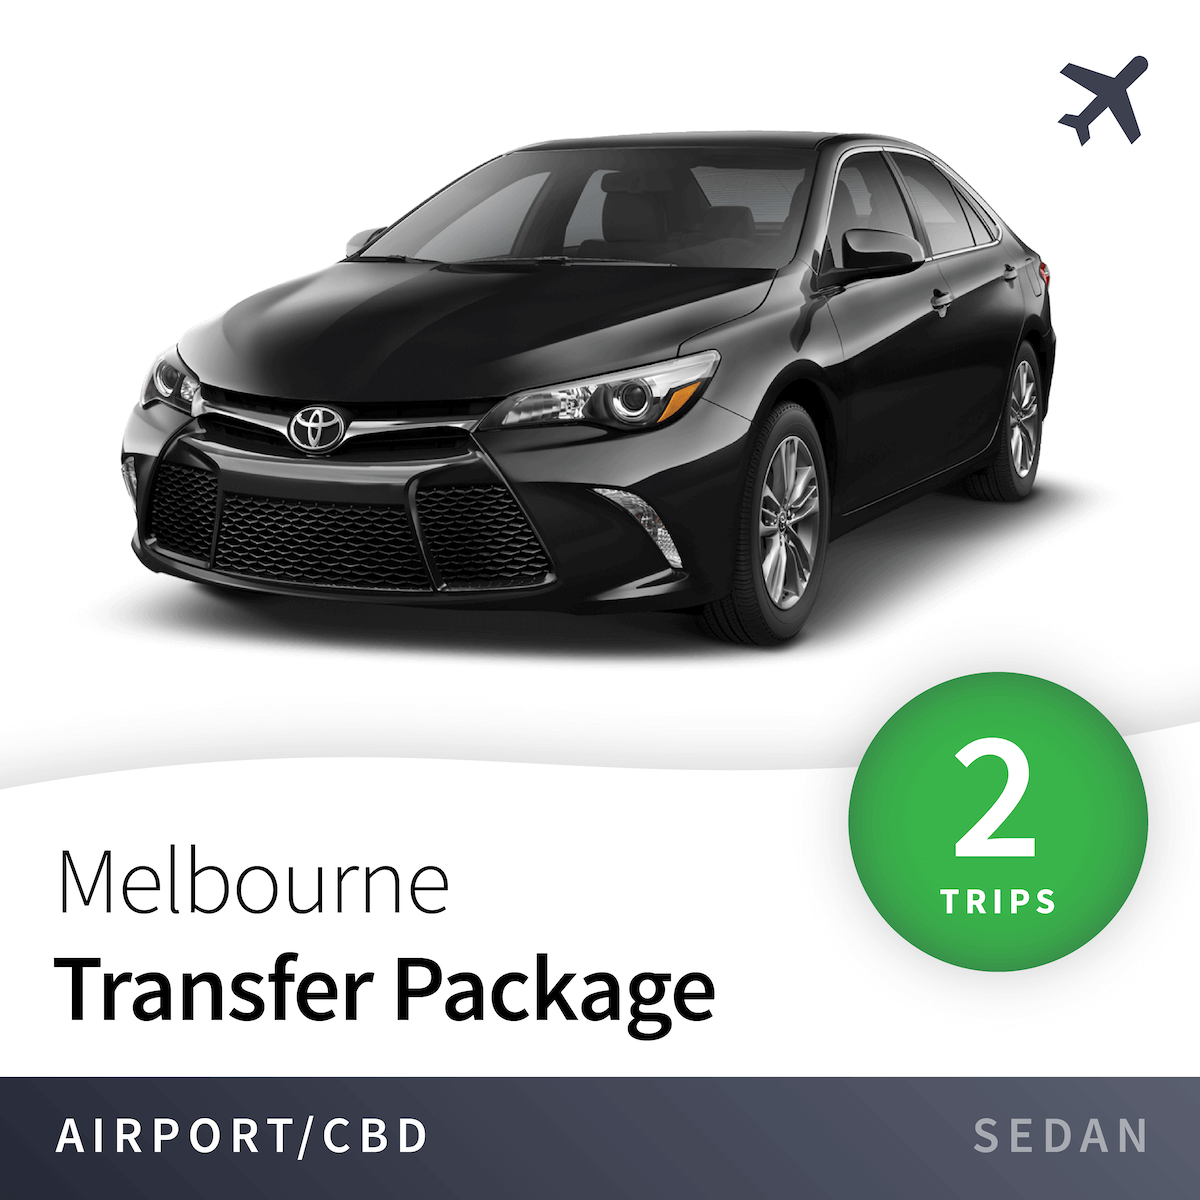 Melbourne Airport Transfer Package - Sedan (2 Trips) 9